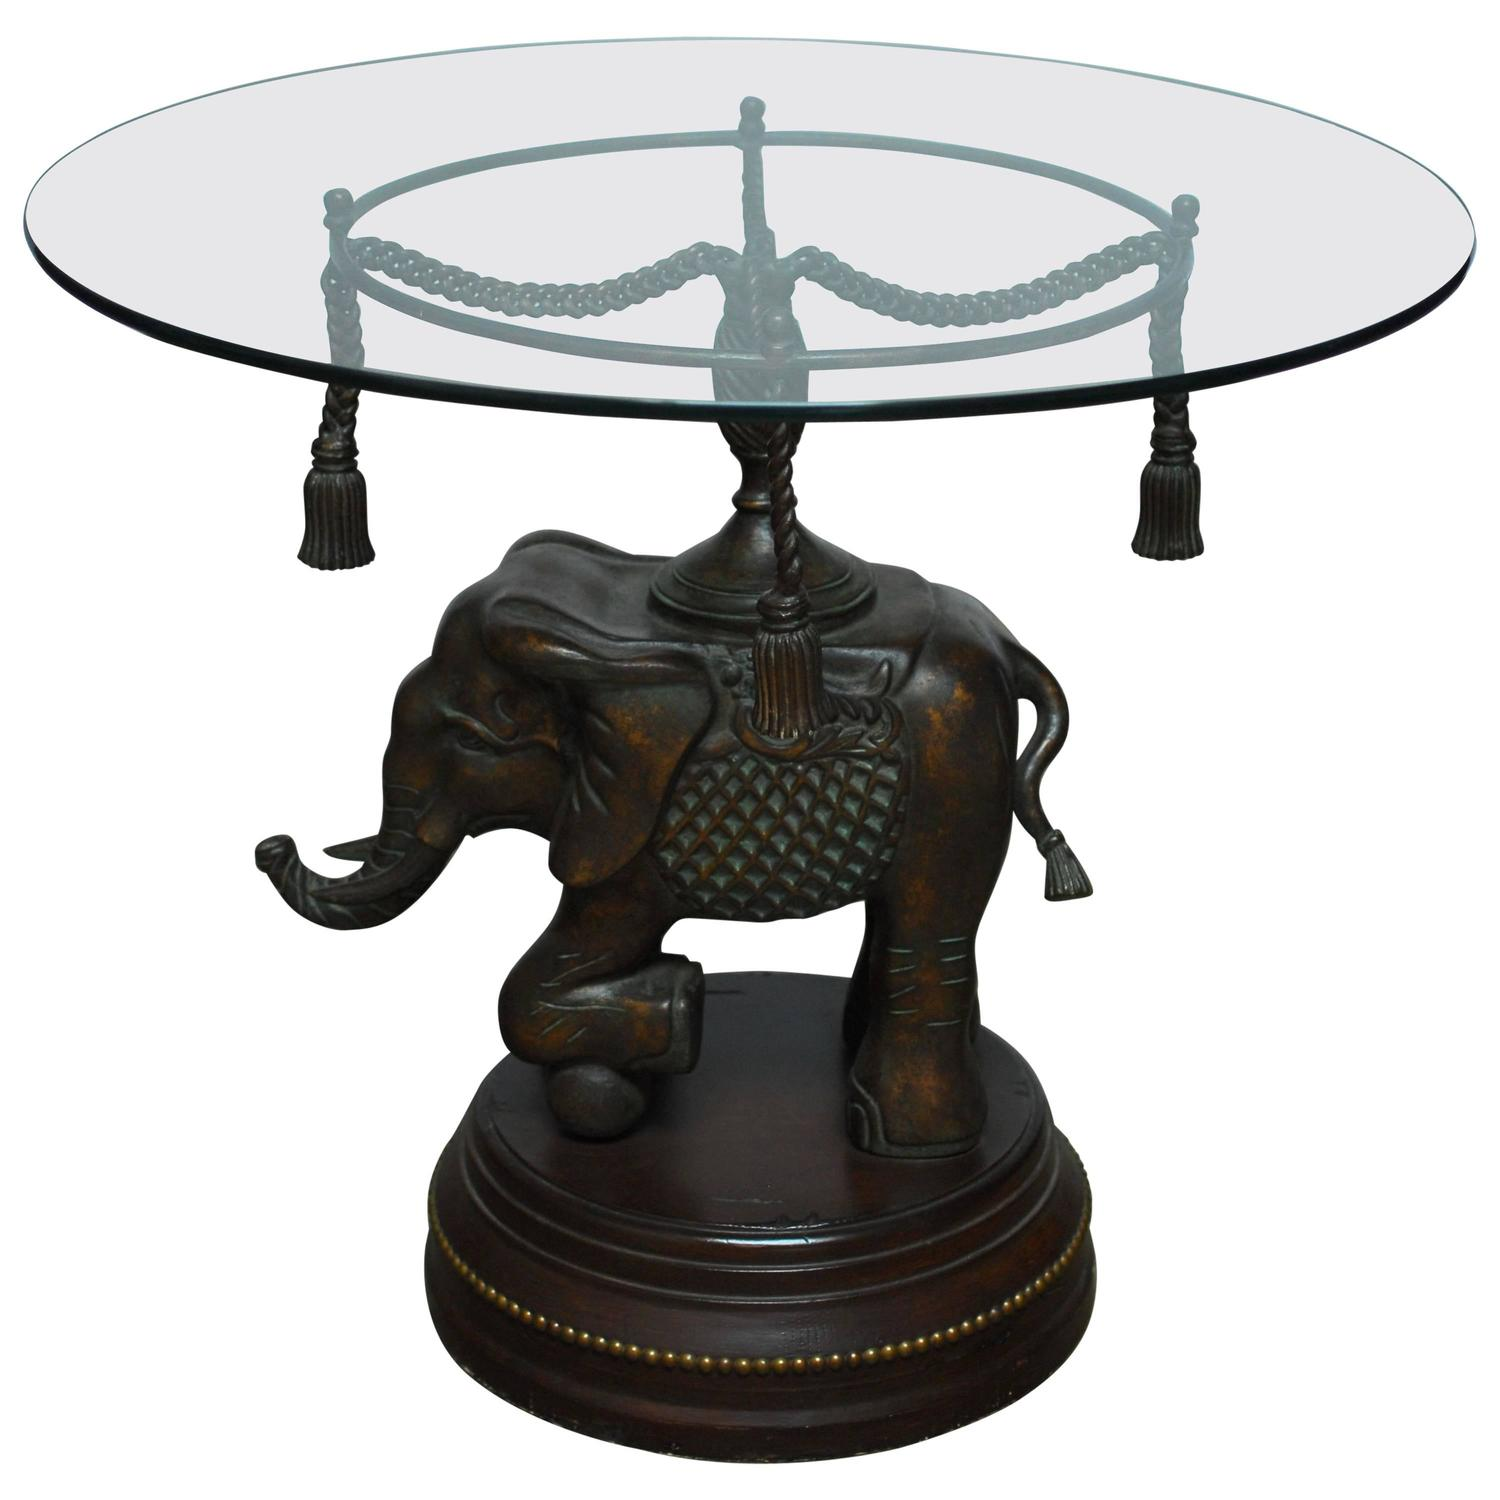 bronze elephant pedestal side table for narrow accent hand painted wood mosaic laminate primer studded dining chairs small kidney shaped inch wide console pier imports lamps with